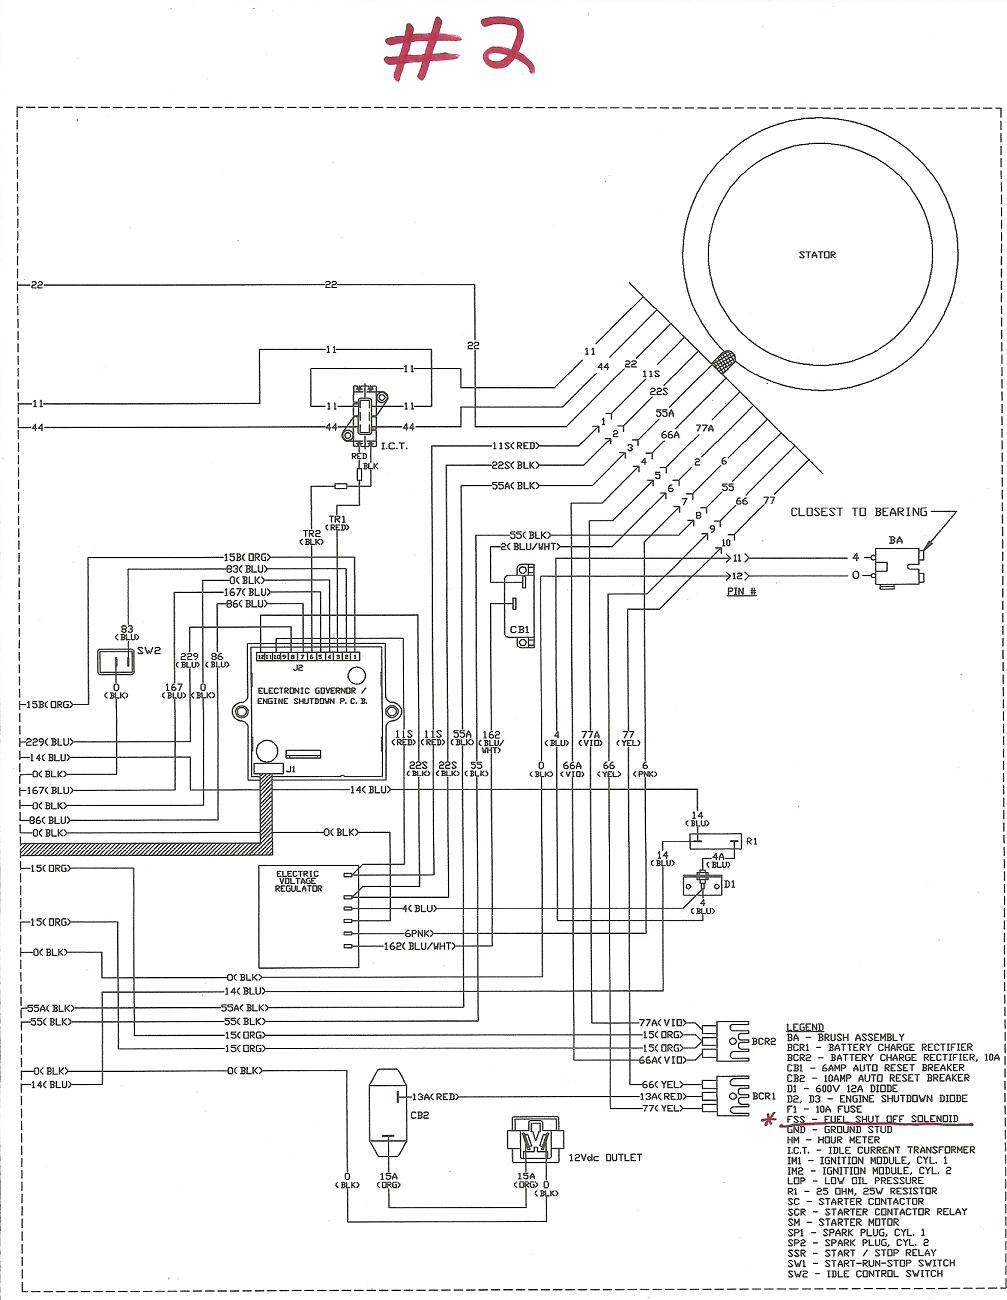 5500 watt generator wiring diagram